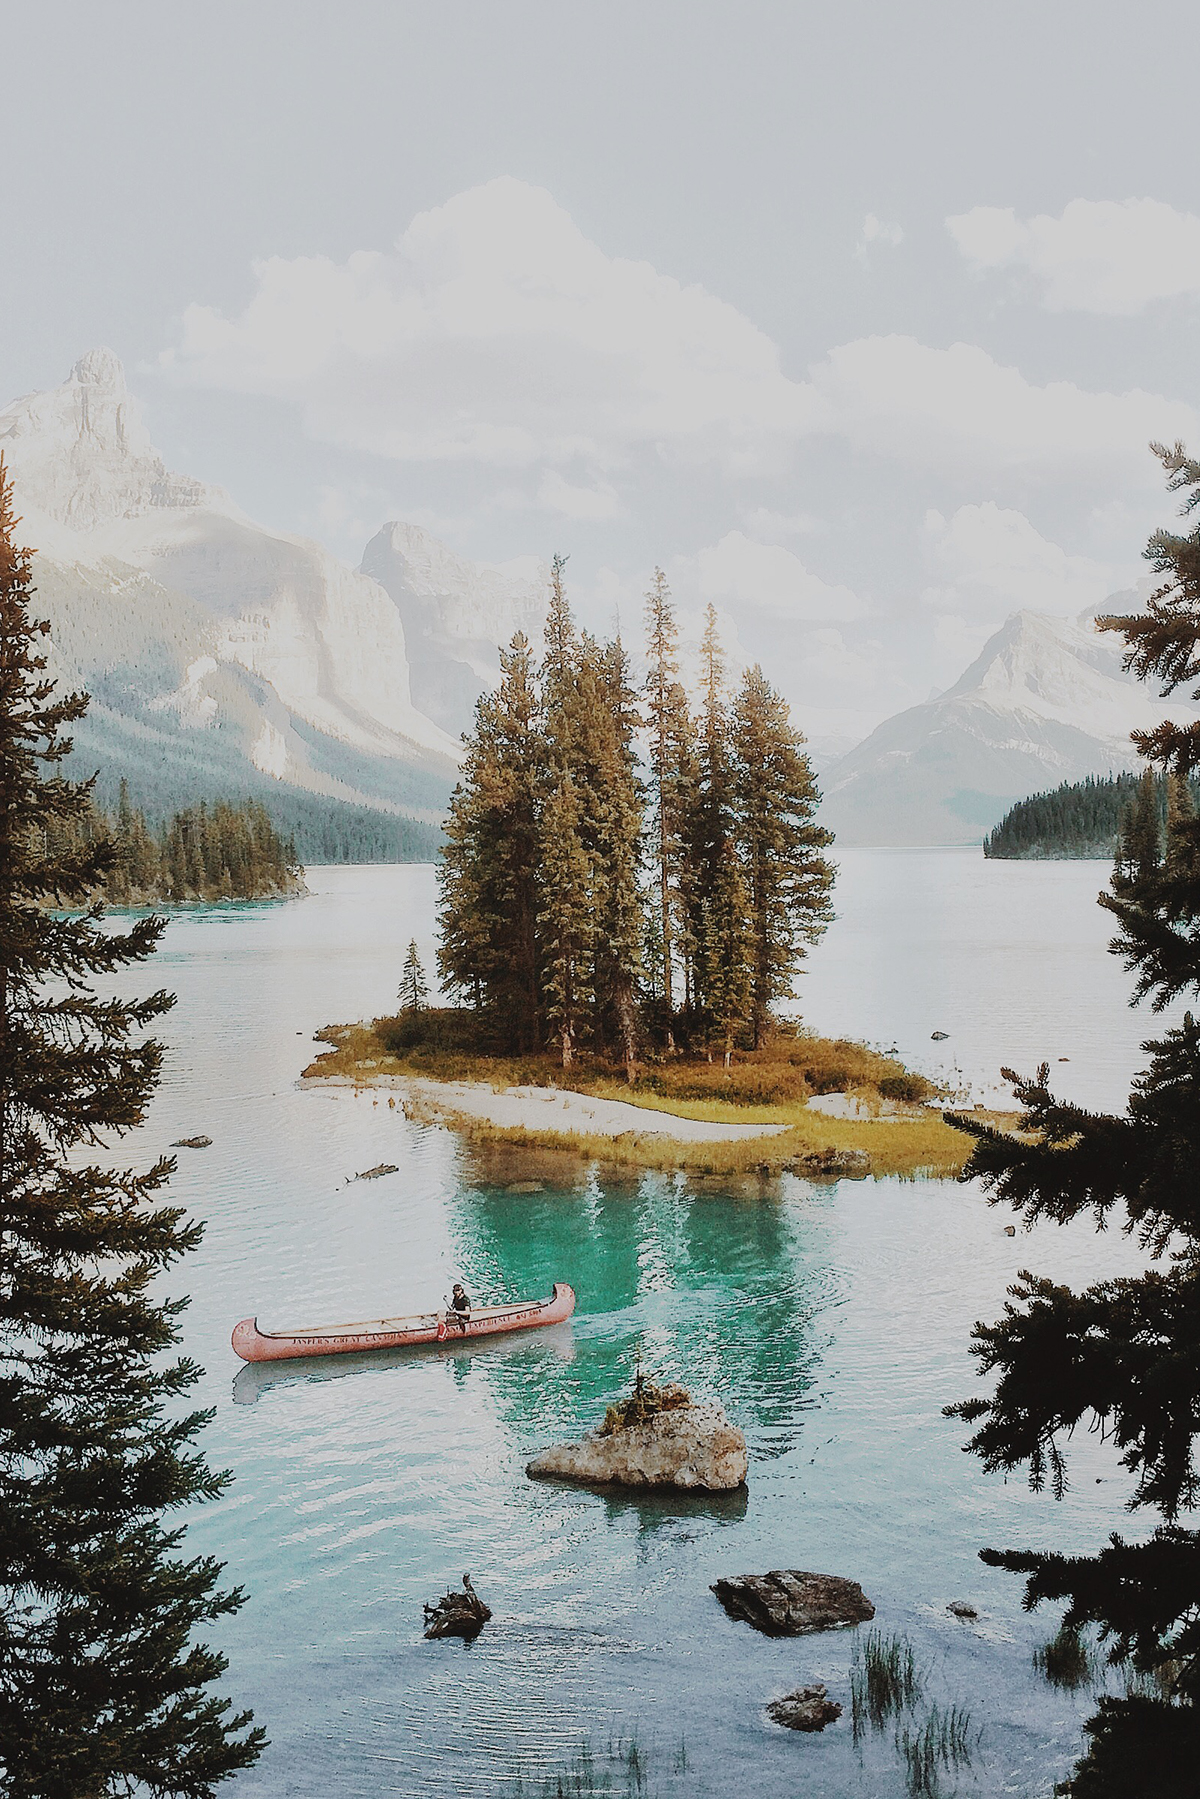 Photo by Alex Strohl of small island in a lake surrounded by mountains